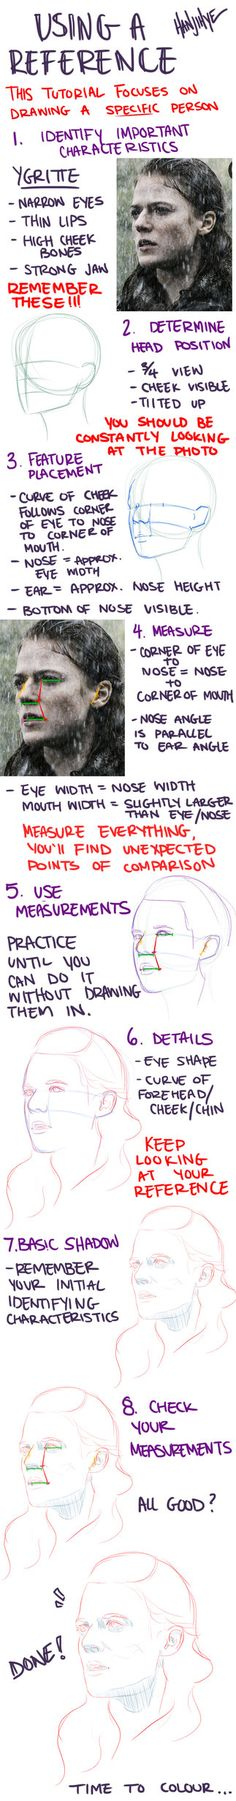 A portrait tutorial in response to a tumblr ask. Let me know if you have any questions! NOTE: Measuring is really the most important step (in my opinion). Really, MEASURE EVERYTHING ITS SUPER HELPF...